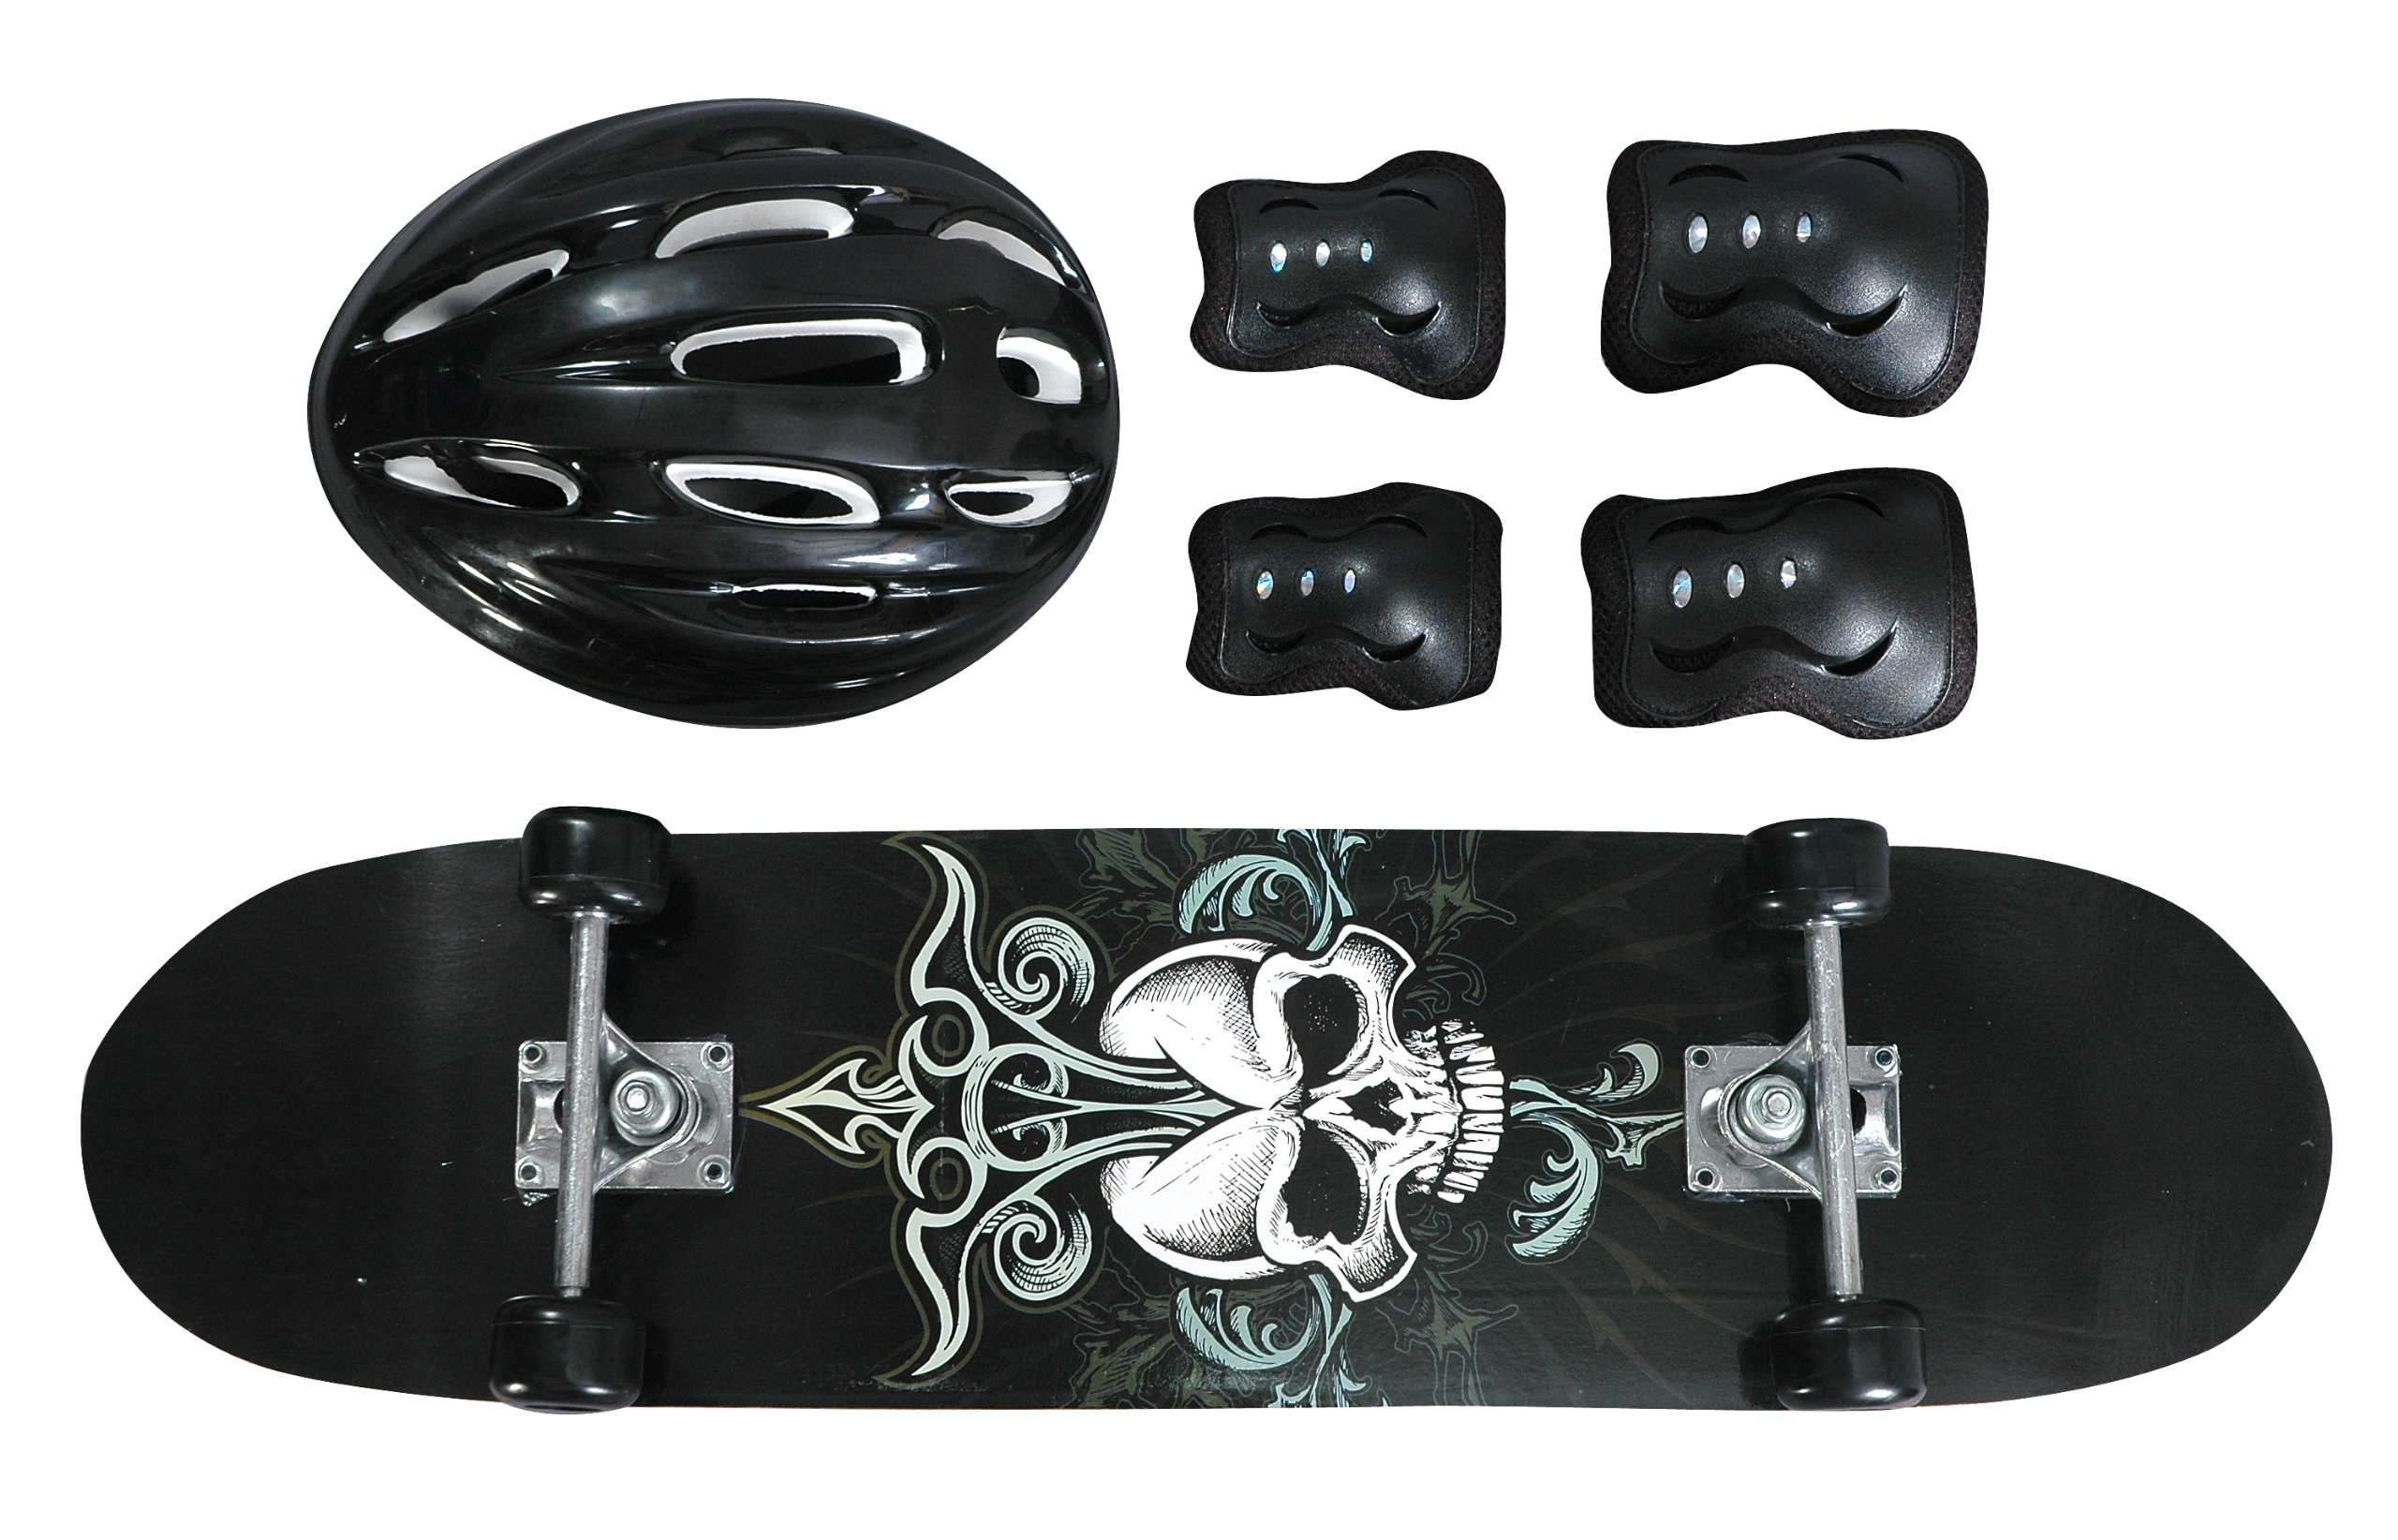 Black Skull Design Youth Skateboard Combo Pack with Board, Helmet, Knee and Elbow Pads